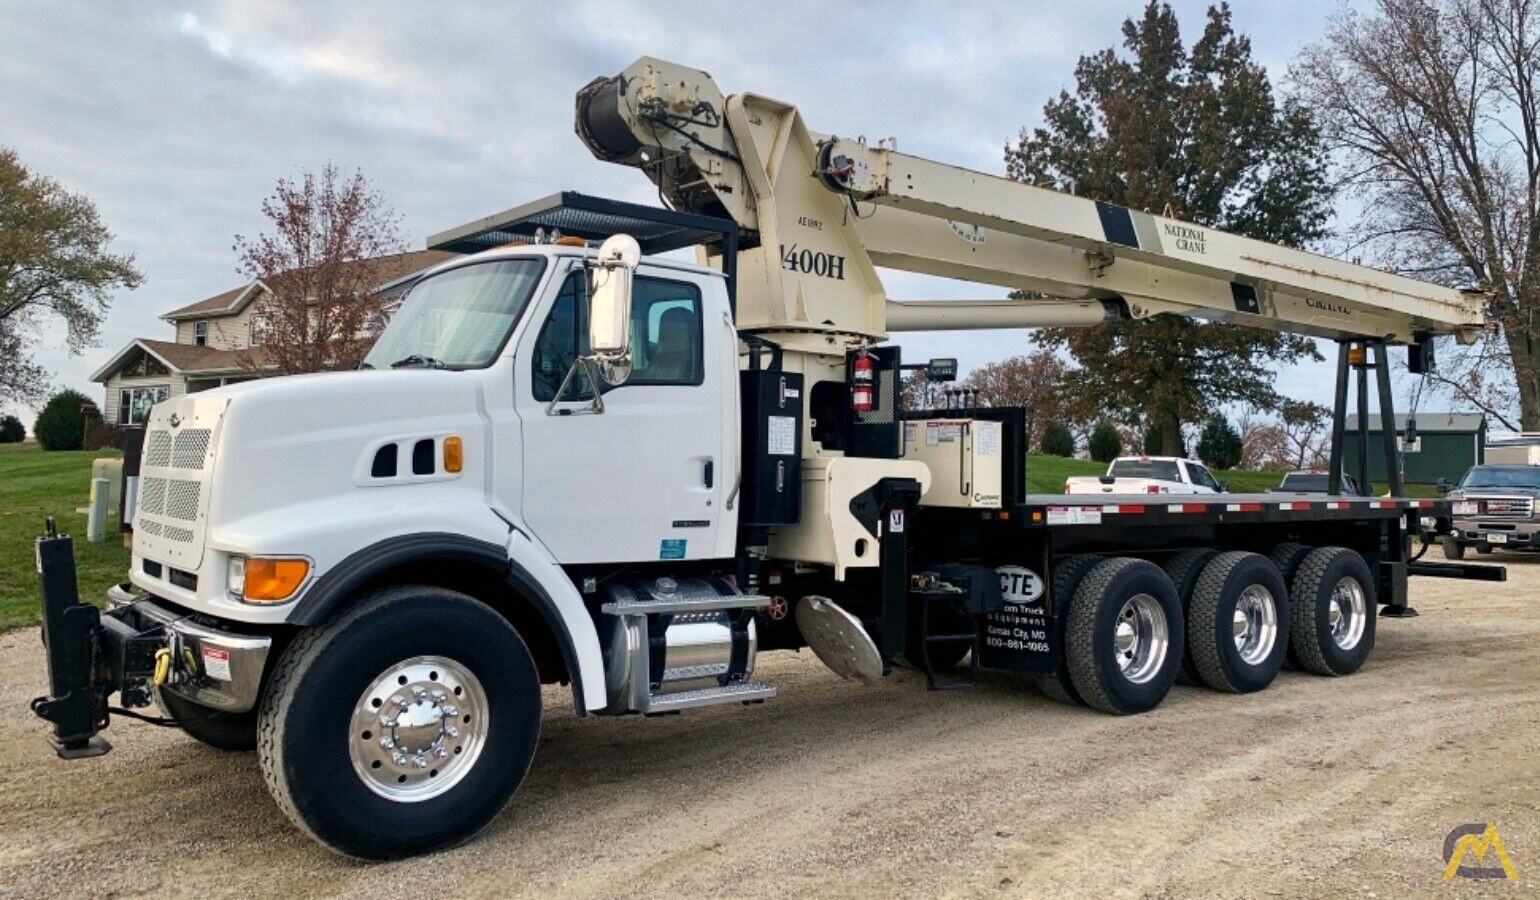 National Series Series 1400H Model 14127H 33-Ton Boom Truck Crane on Sterling L7500 0